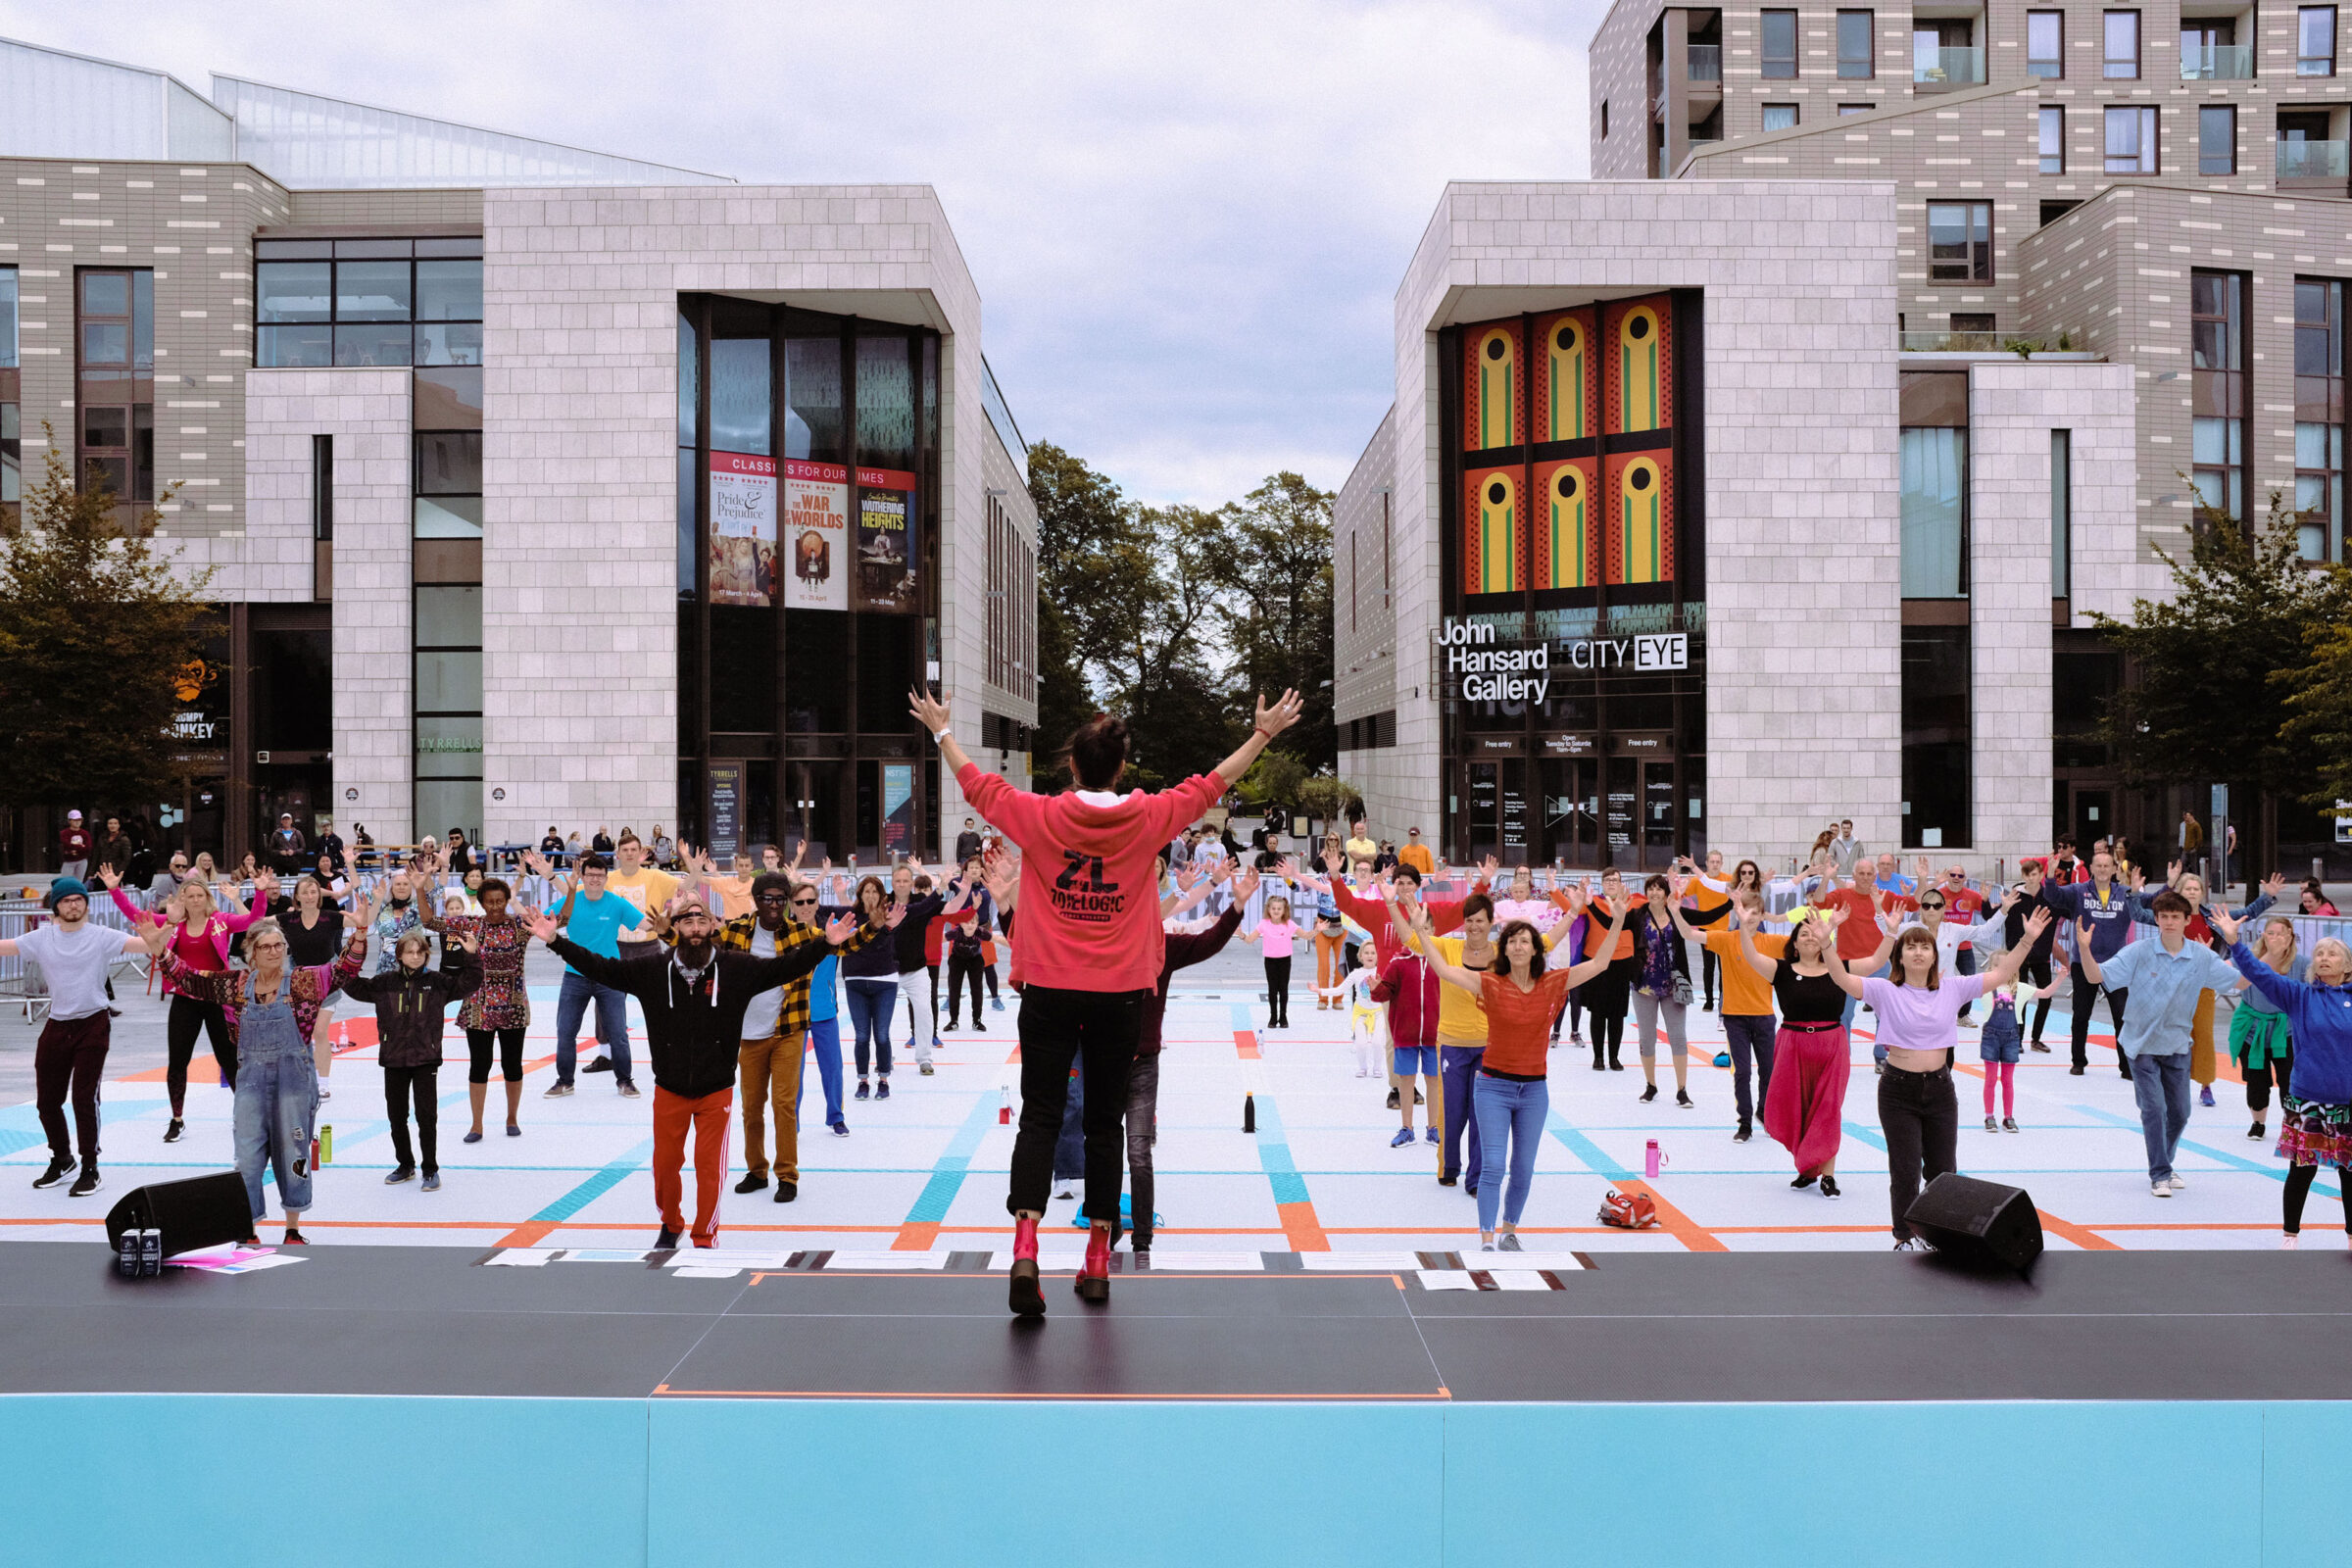 Participants performing in a socially distanced grid all hold their arms up in the air